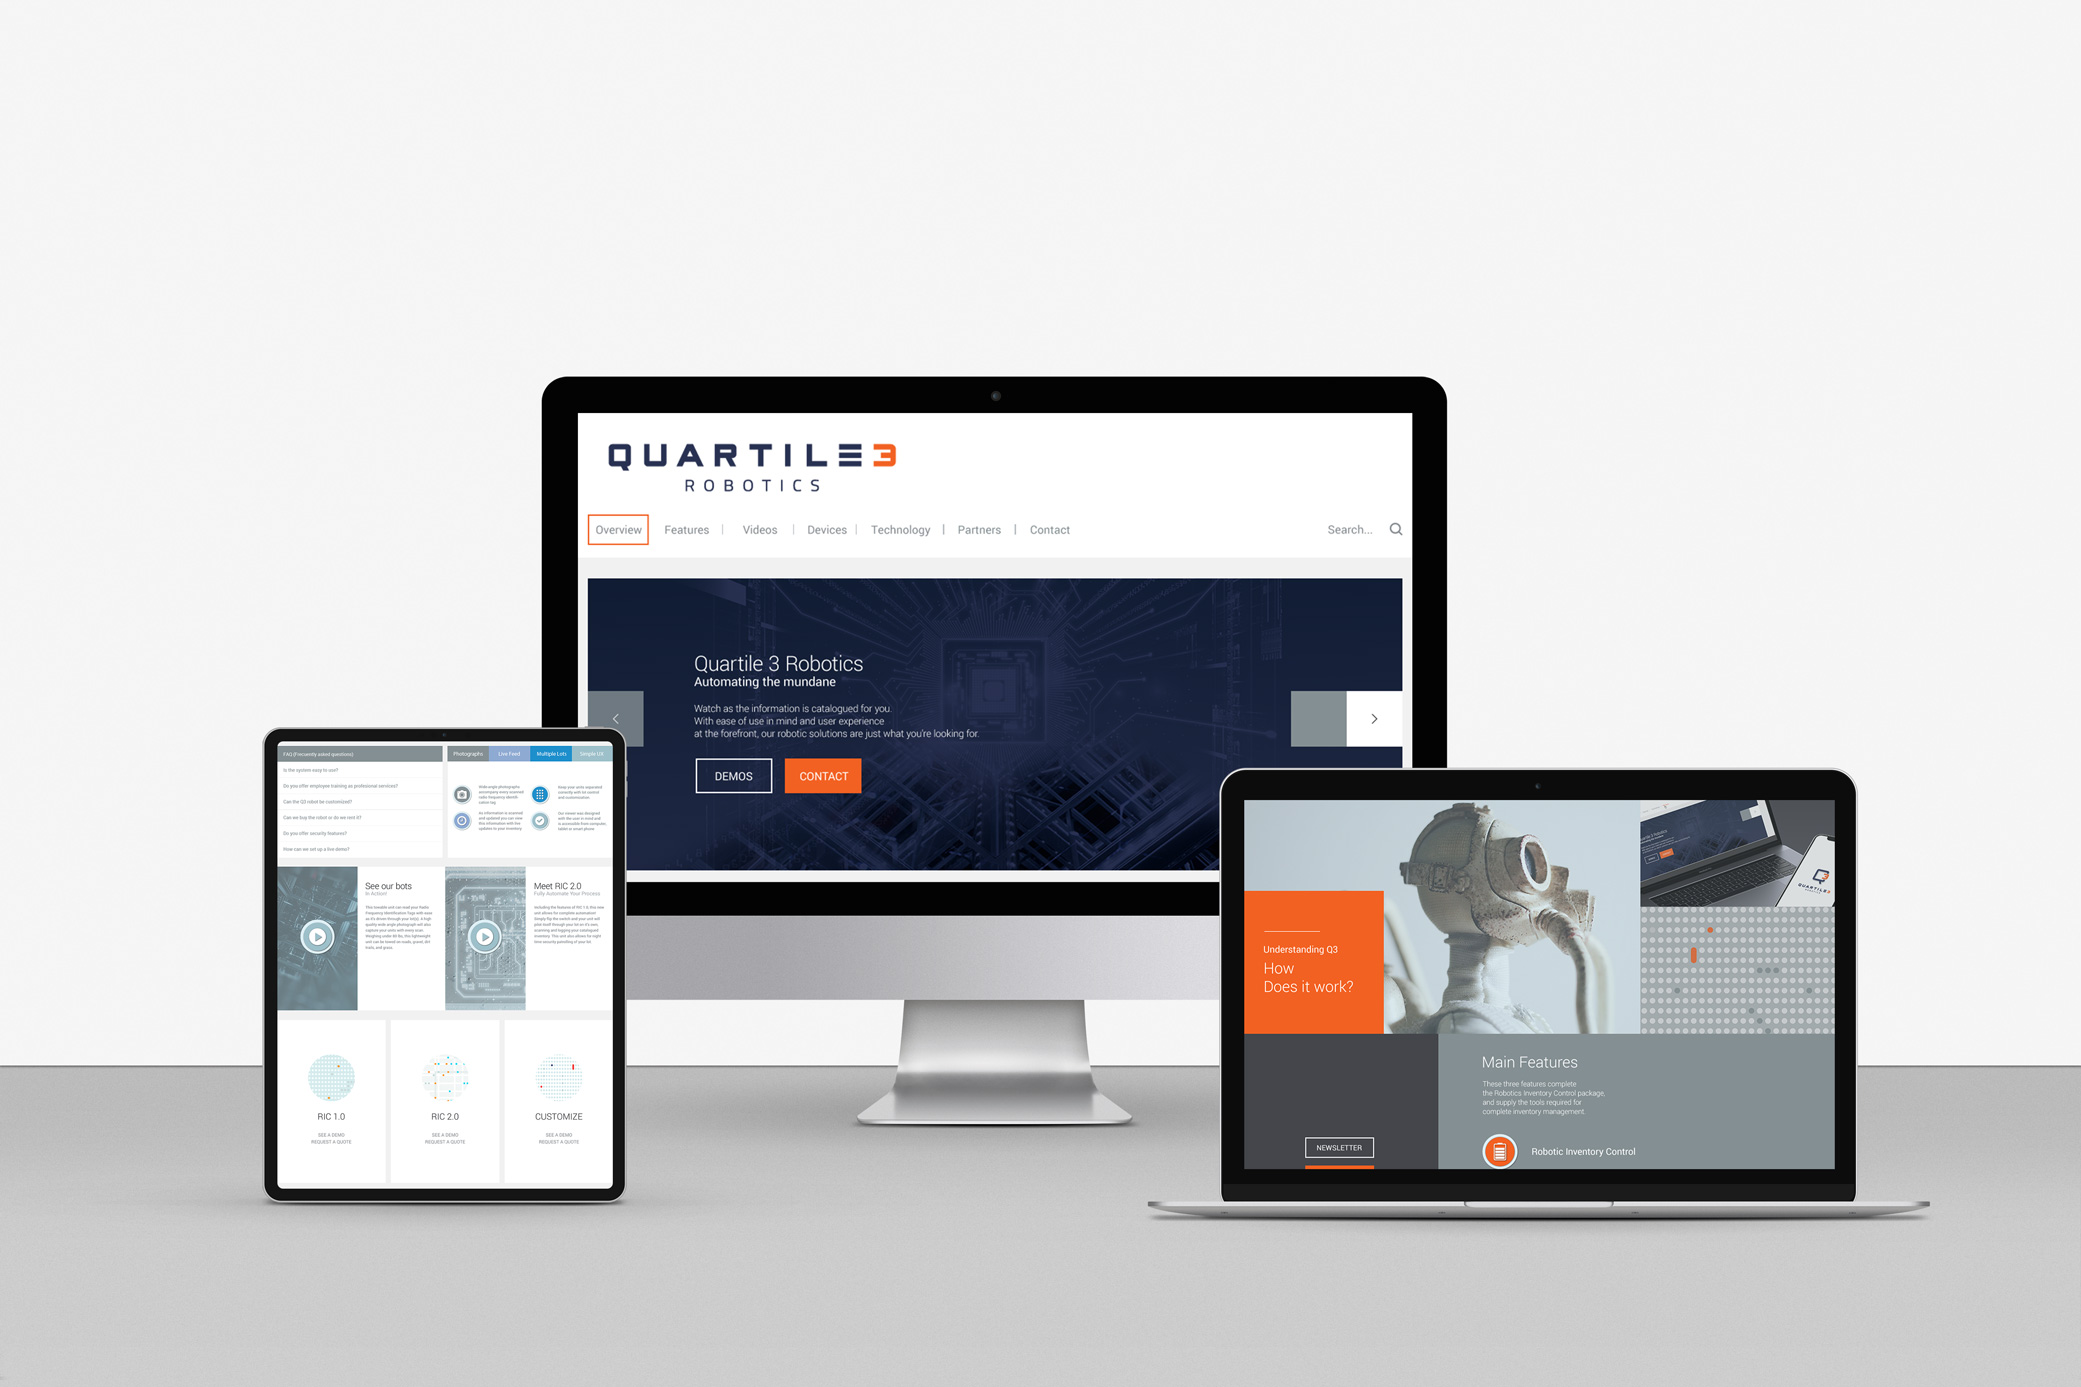 Quartile 3 Robotics technology company web design aligning with the tech-focus of the brand, incorporating sleek images of circuits, droids, and computers.